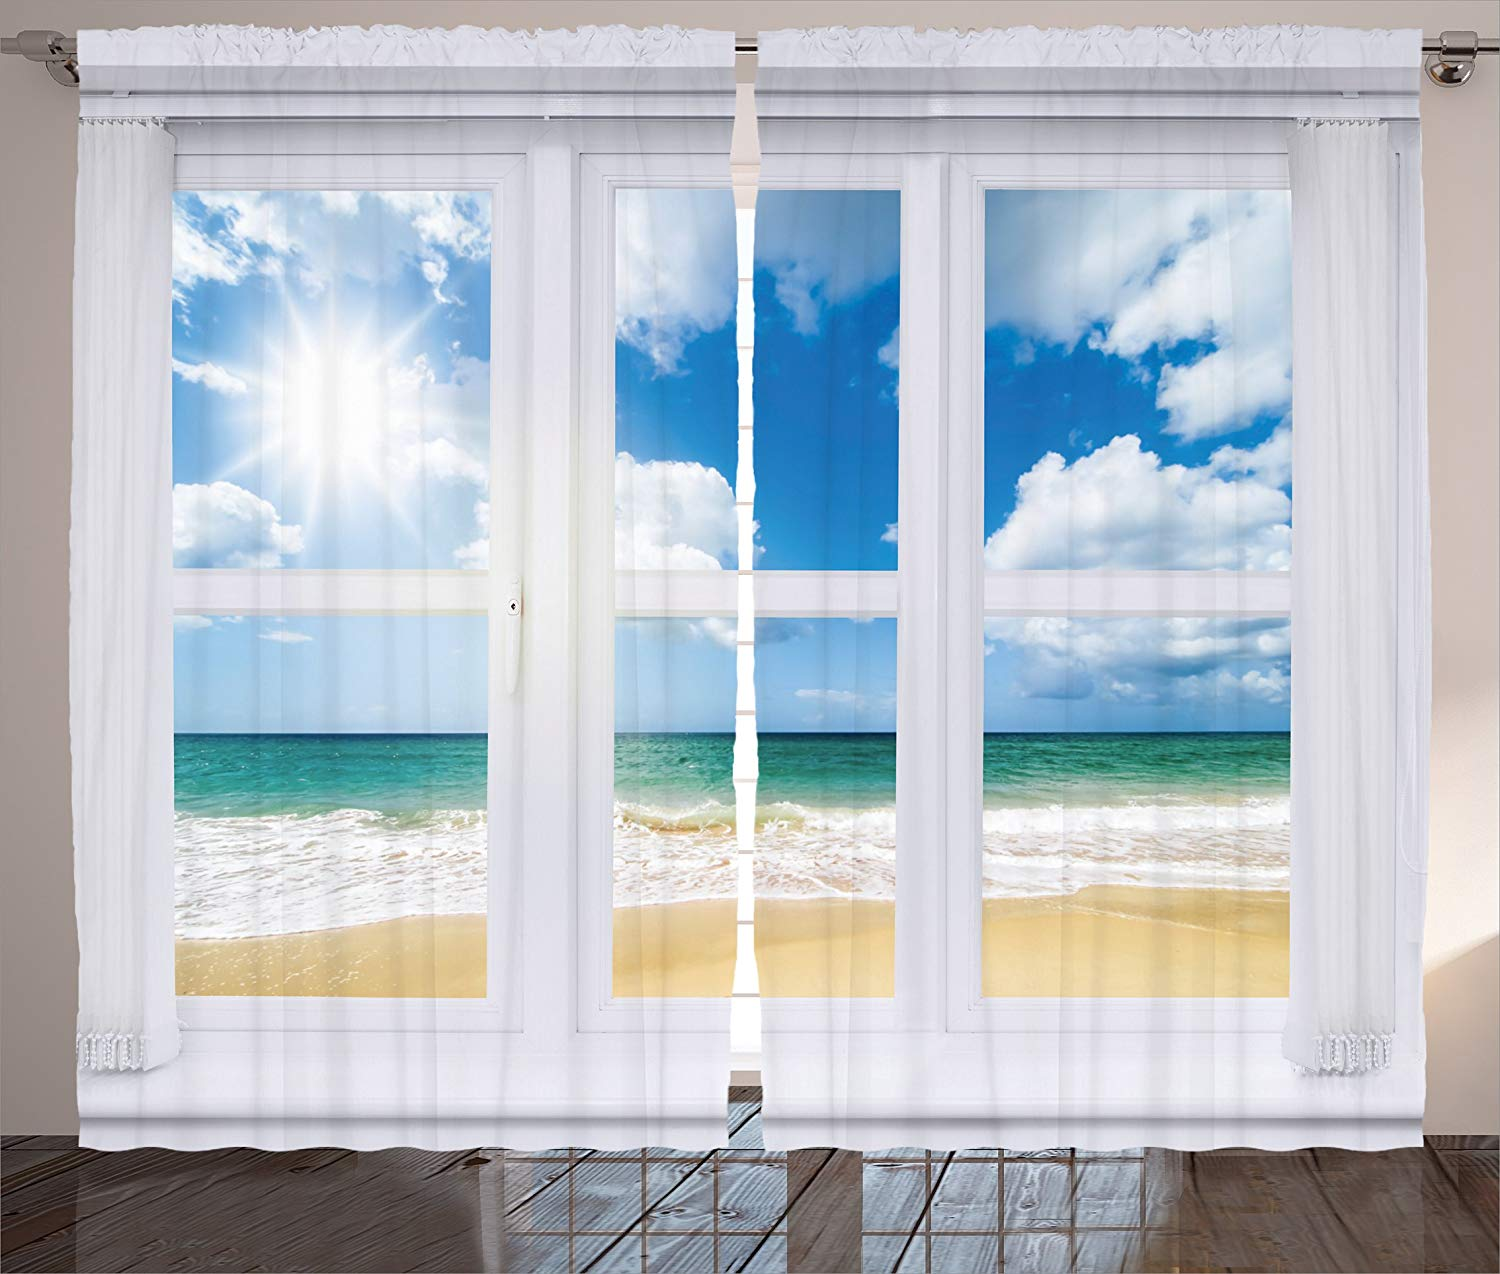 Us 13 62 35 Off House Decor Curtains Beach House Window Overlooking An Ocean View Bright Sunshine Sandy Cloudscape Living Room Bedroom Decor In